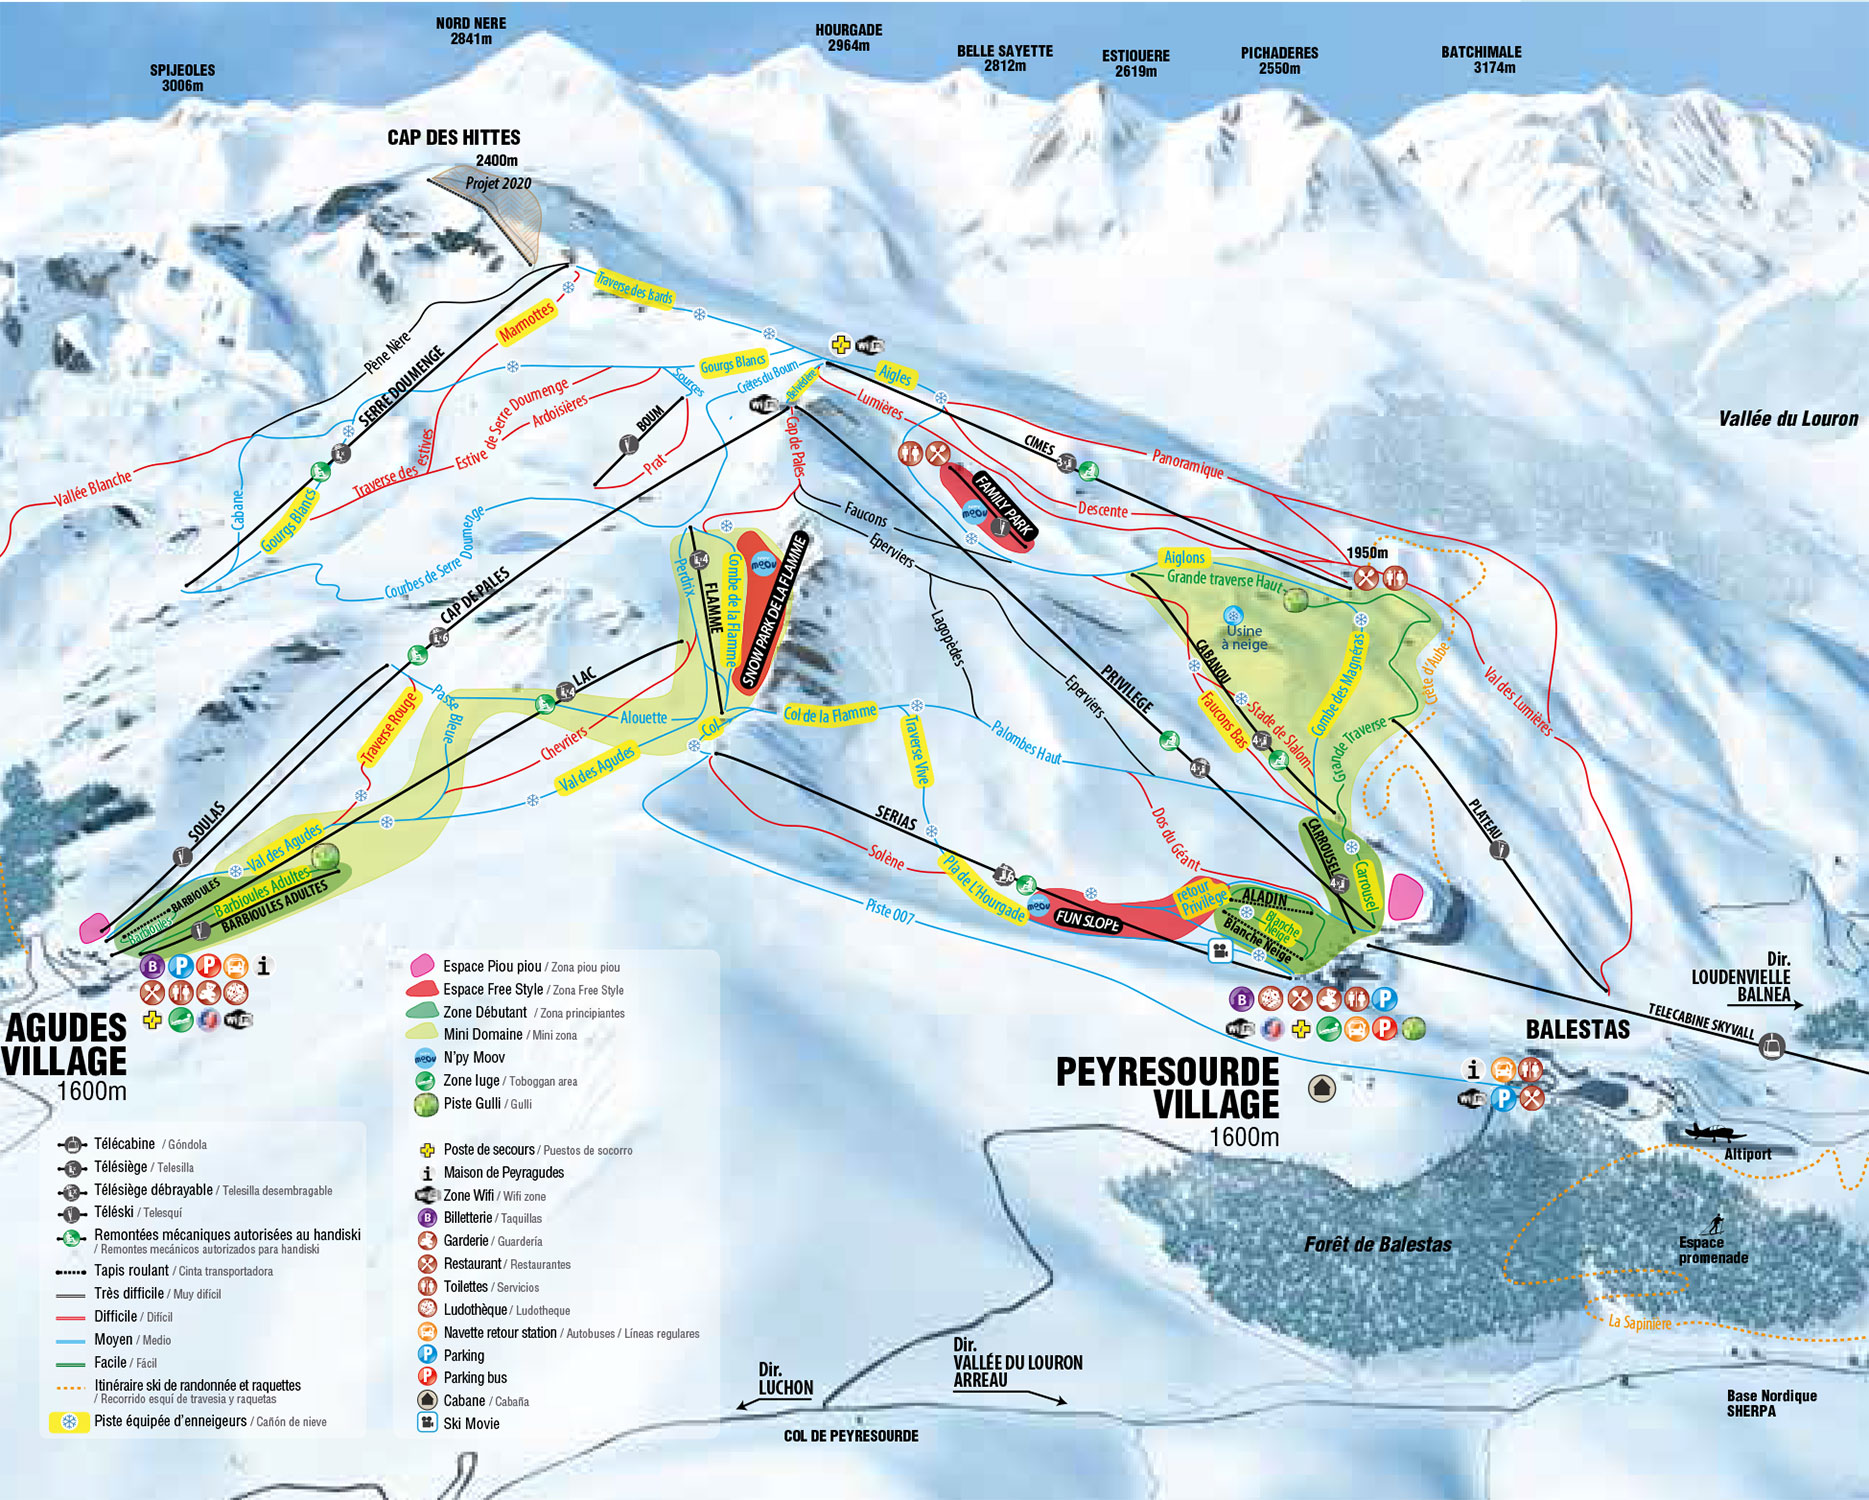 Ski slopes plan